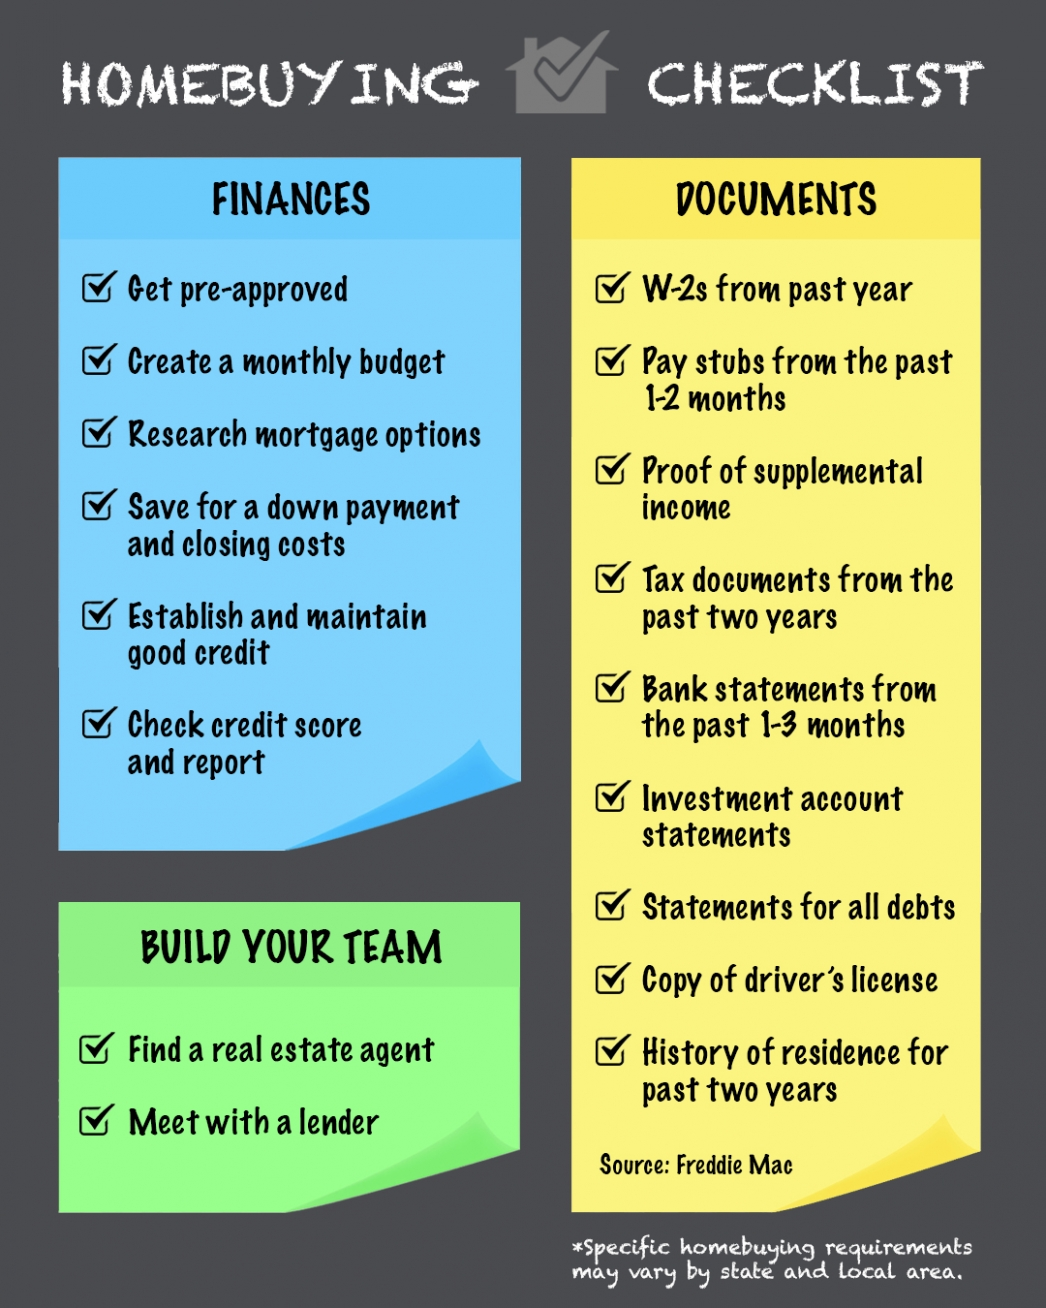 2020 Homebuying Checklist [INFOGRAPHIC] | MyKCM